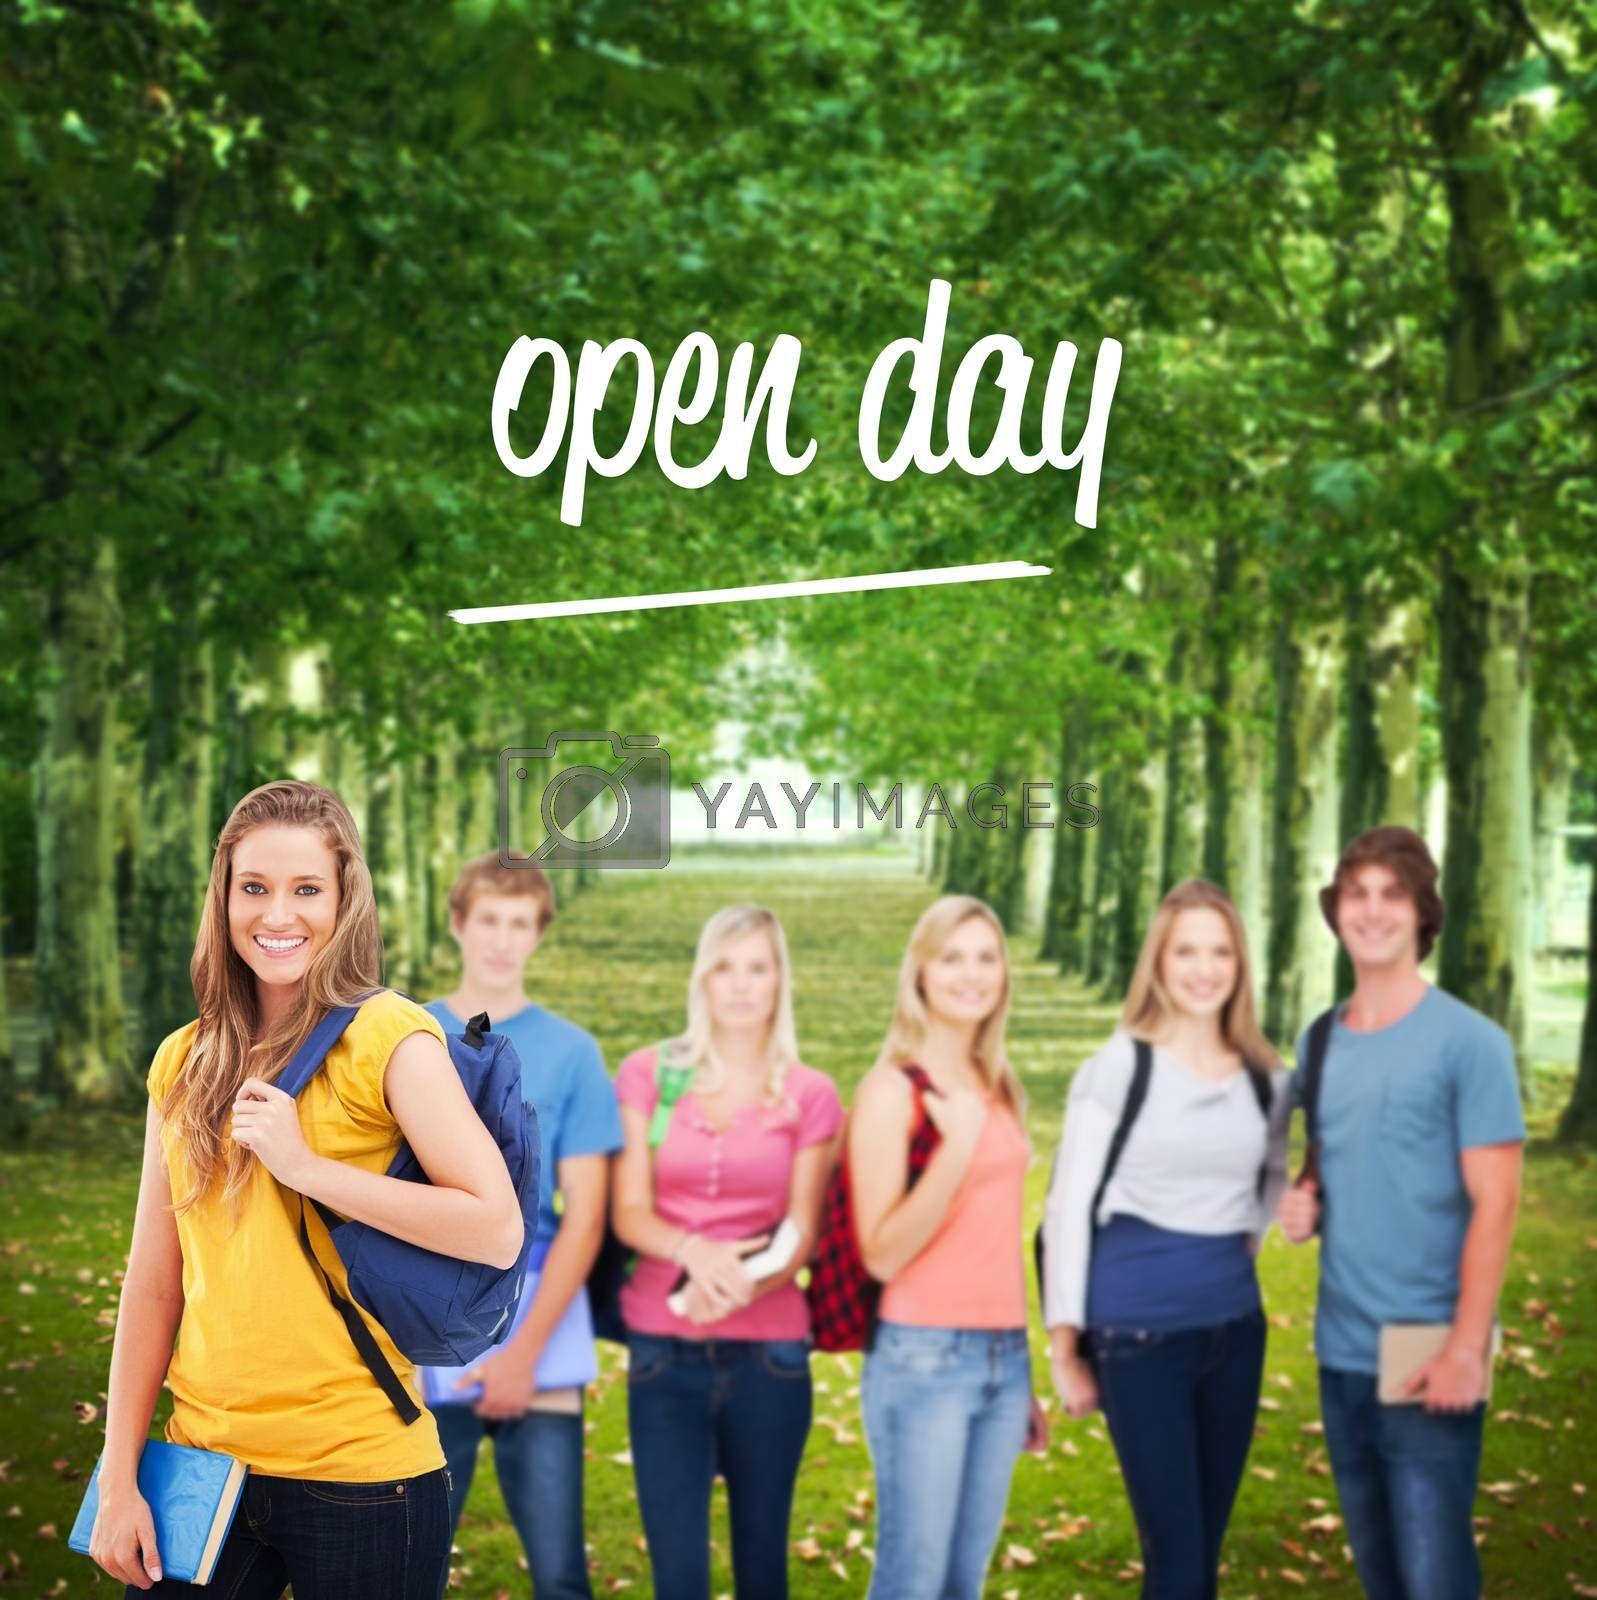 Open day against walkway along lined trees in the park by Wavebreakmedia